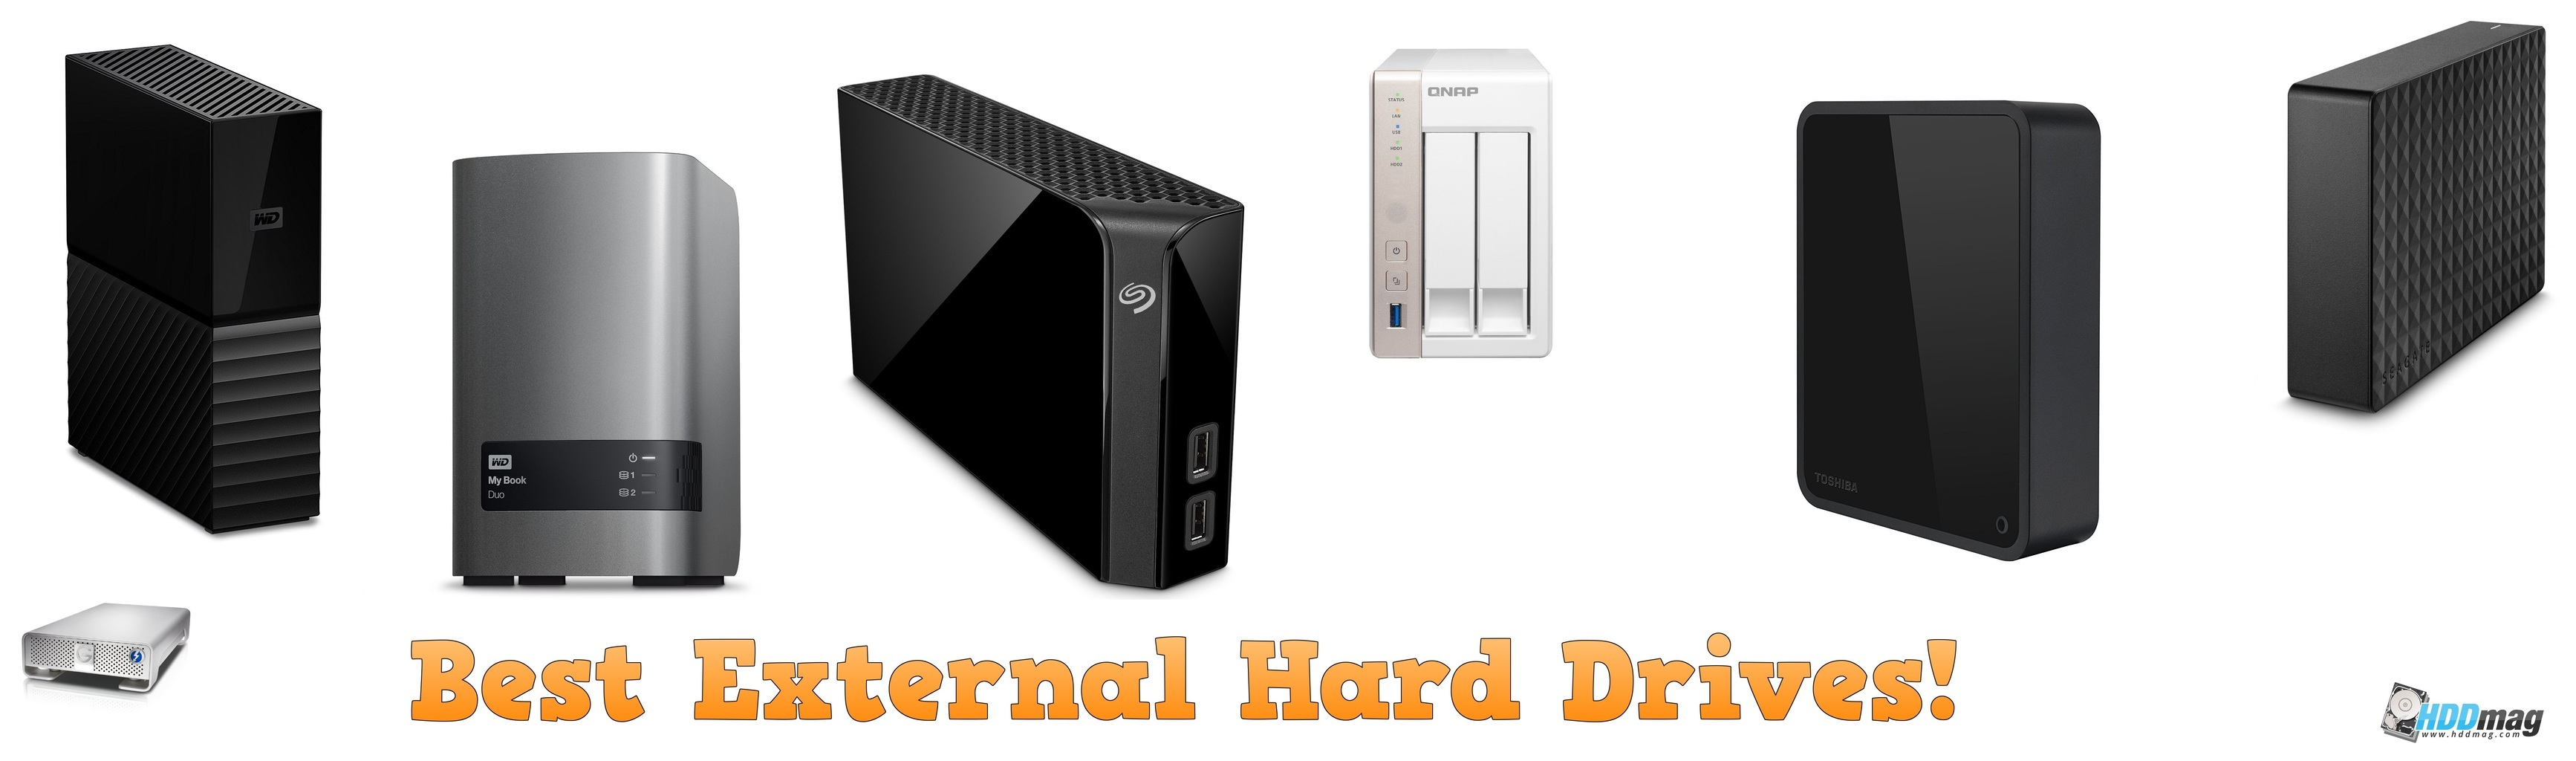 The Best External Hard Drives Of 2018 Wd My Book 6tb Usb 30 Harddisk